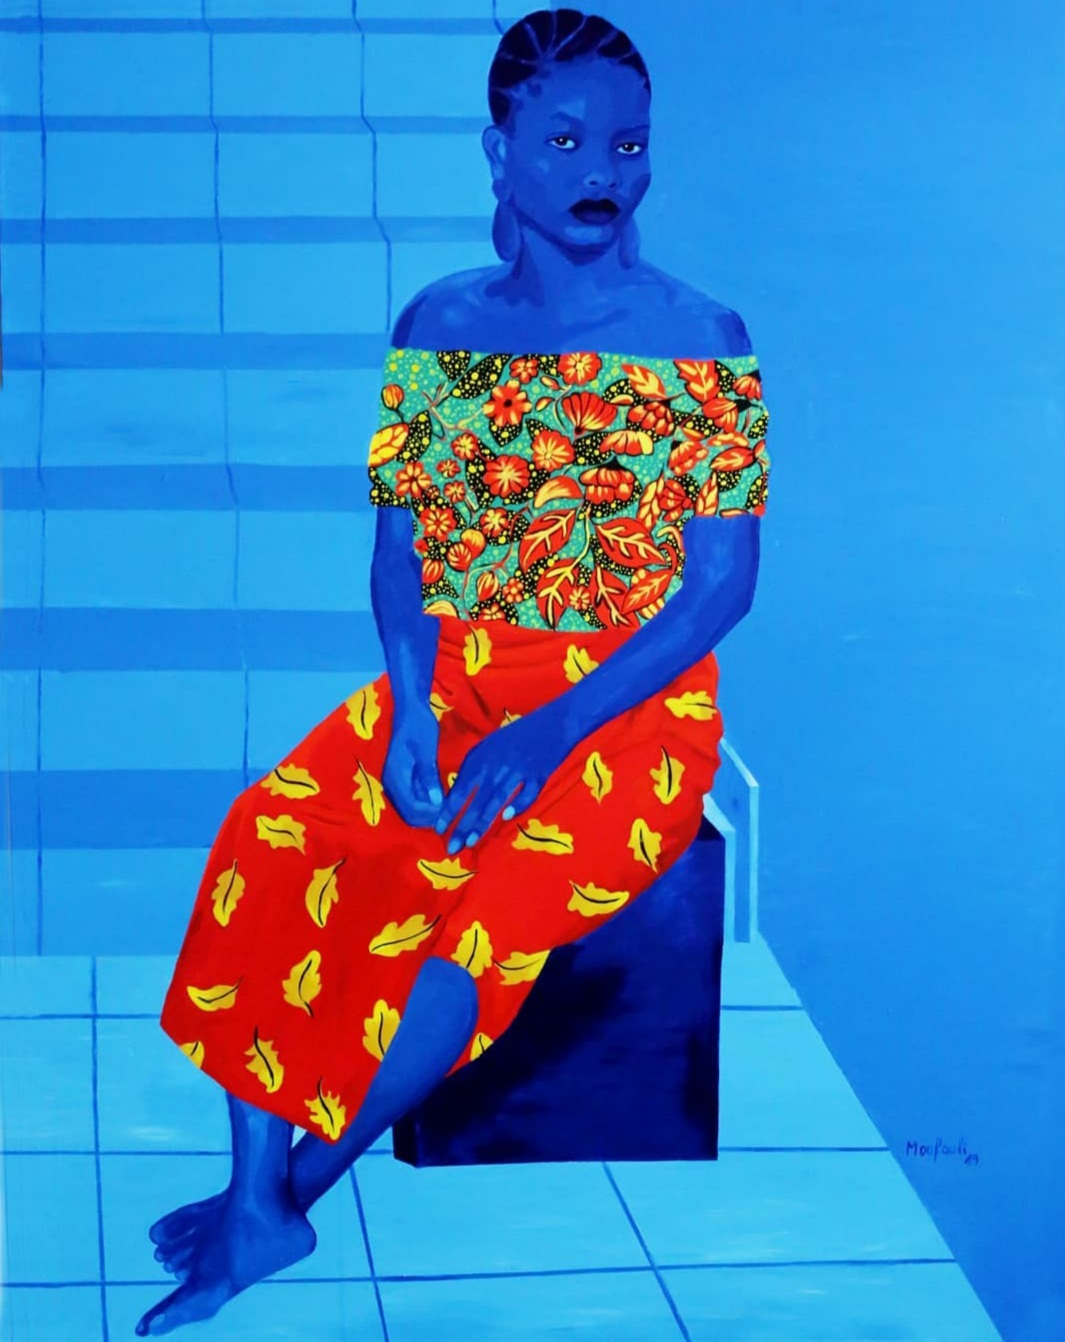 Moufouli Bello 'A Kind of Woman', 2019, courtesy of the artist.